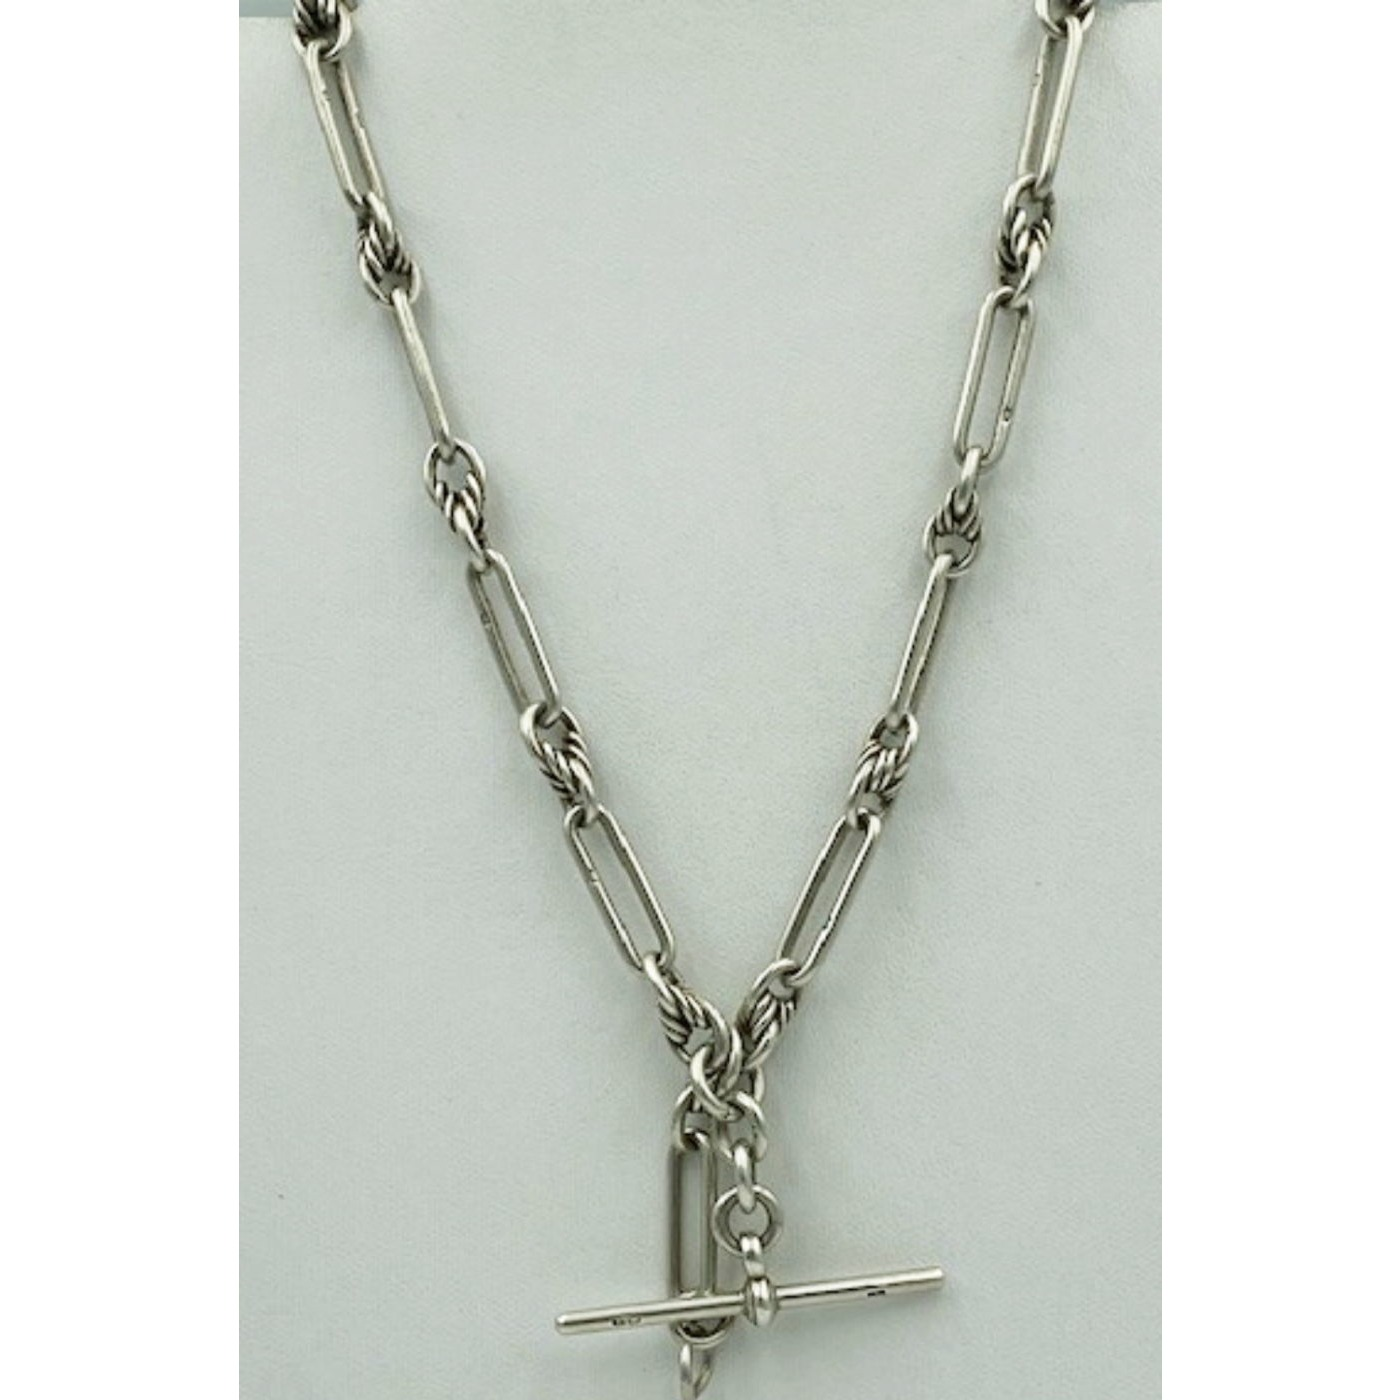 Exceptional English Silver Trombone Link Watch Chain w/ Love Knot